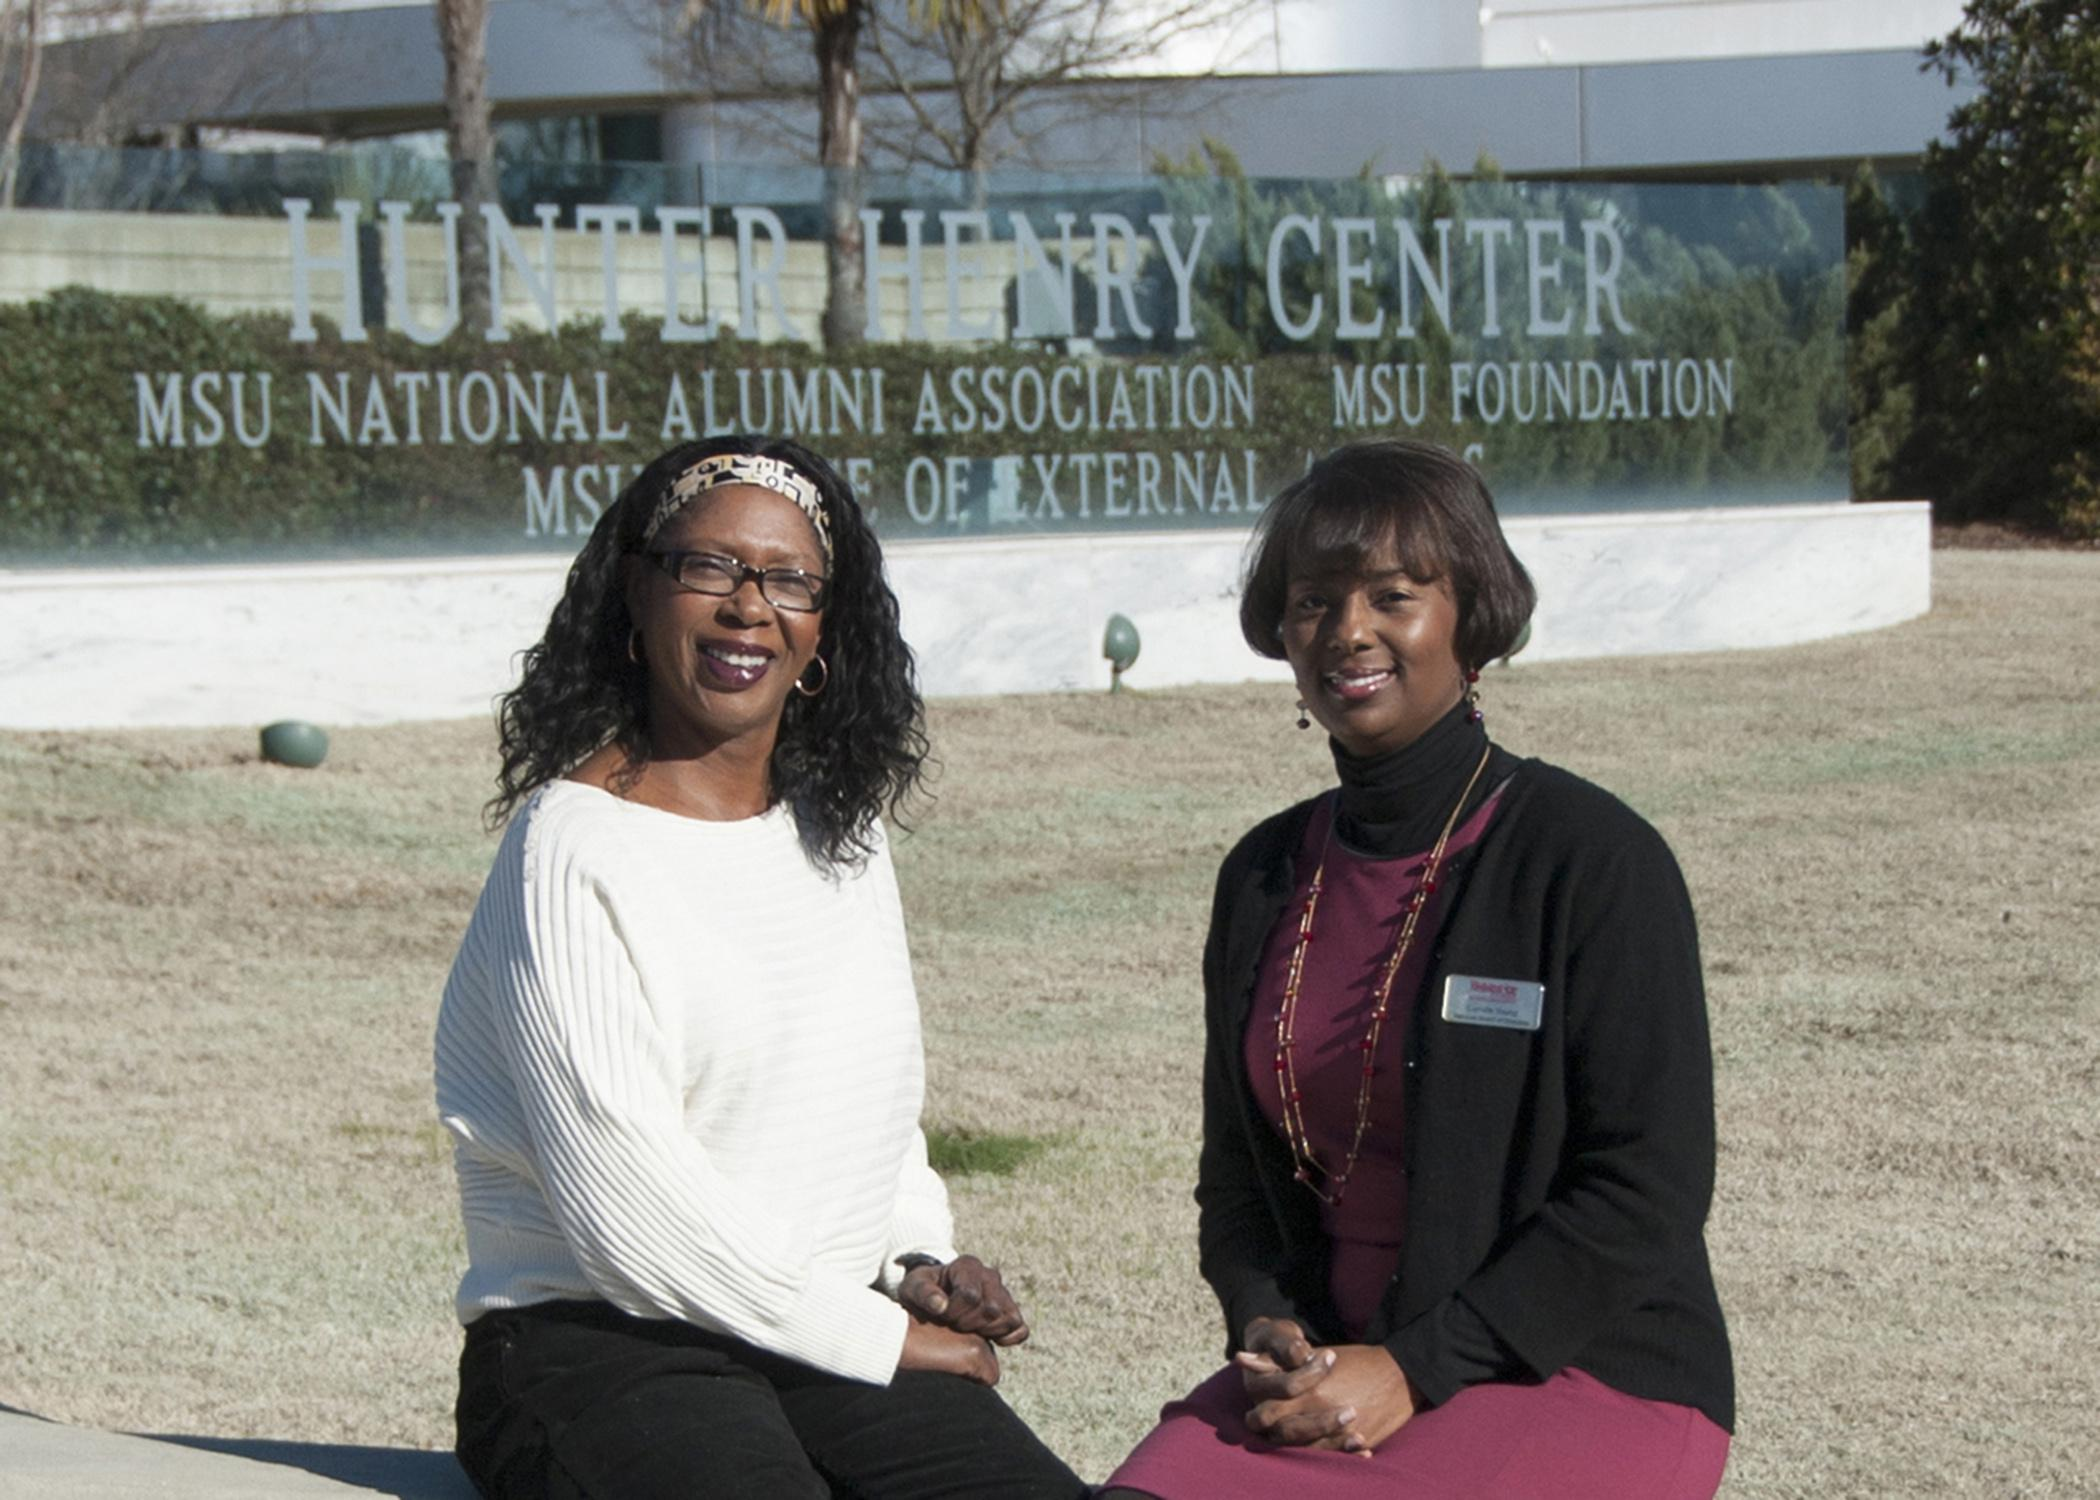 Paula Threadgill, associate director of the Mississippi State University Extension Service, left, and MSU Alumni Association National President Camille Scales Young take time to catch up on 4-H activities during a break in meetings on campus Feb. 1. Threadgill provides leadership for the Mississippi 4-H program, and Young serves on the 4-H Foundation Board of Trustees. (Photo by MSU Ag Communications/Kat Lawrence)